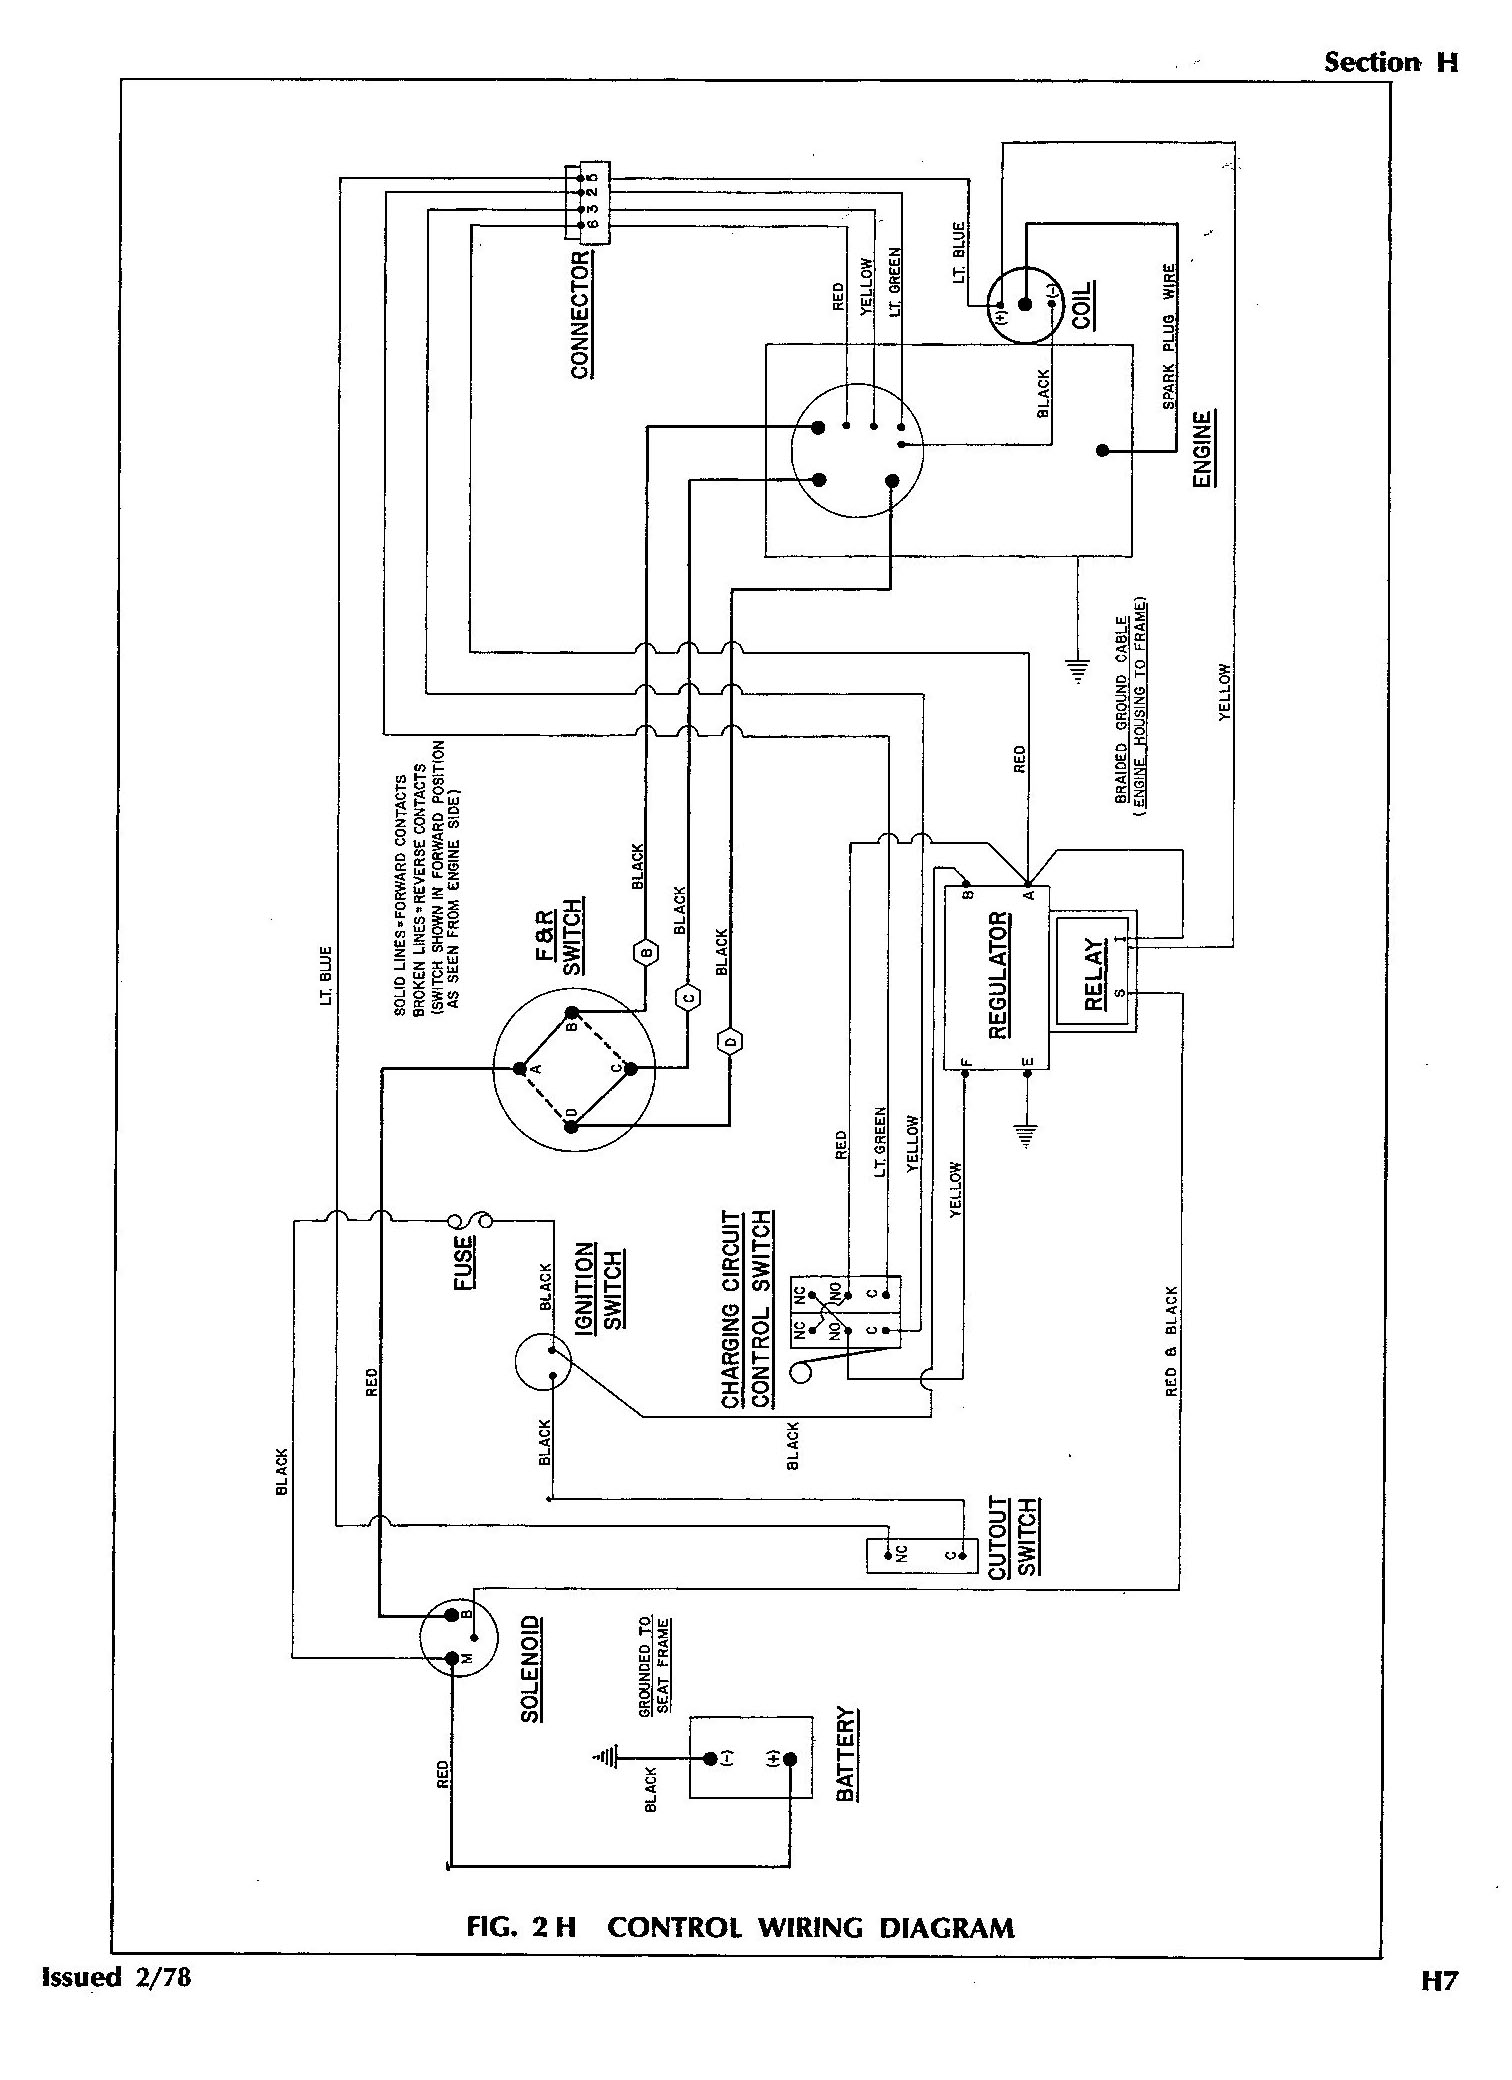 2003 Honda Element Wiring Harness Diagram furthermore Nissan Rogue Ac Relay Location furthermore Headlights Diagram For Fuse Box additionally Udfrb besides 2009 Honda Odyssey Ex Body Wire Harness. on 2009 honda pilot radio wiring diagrams